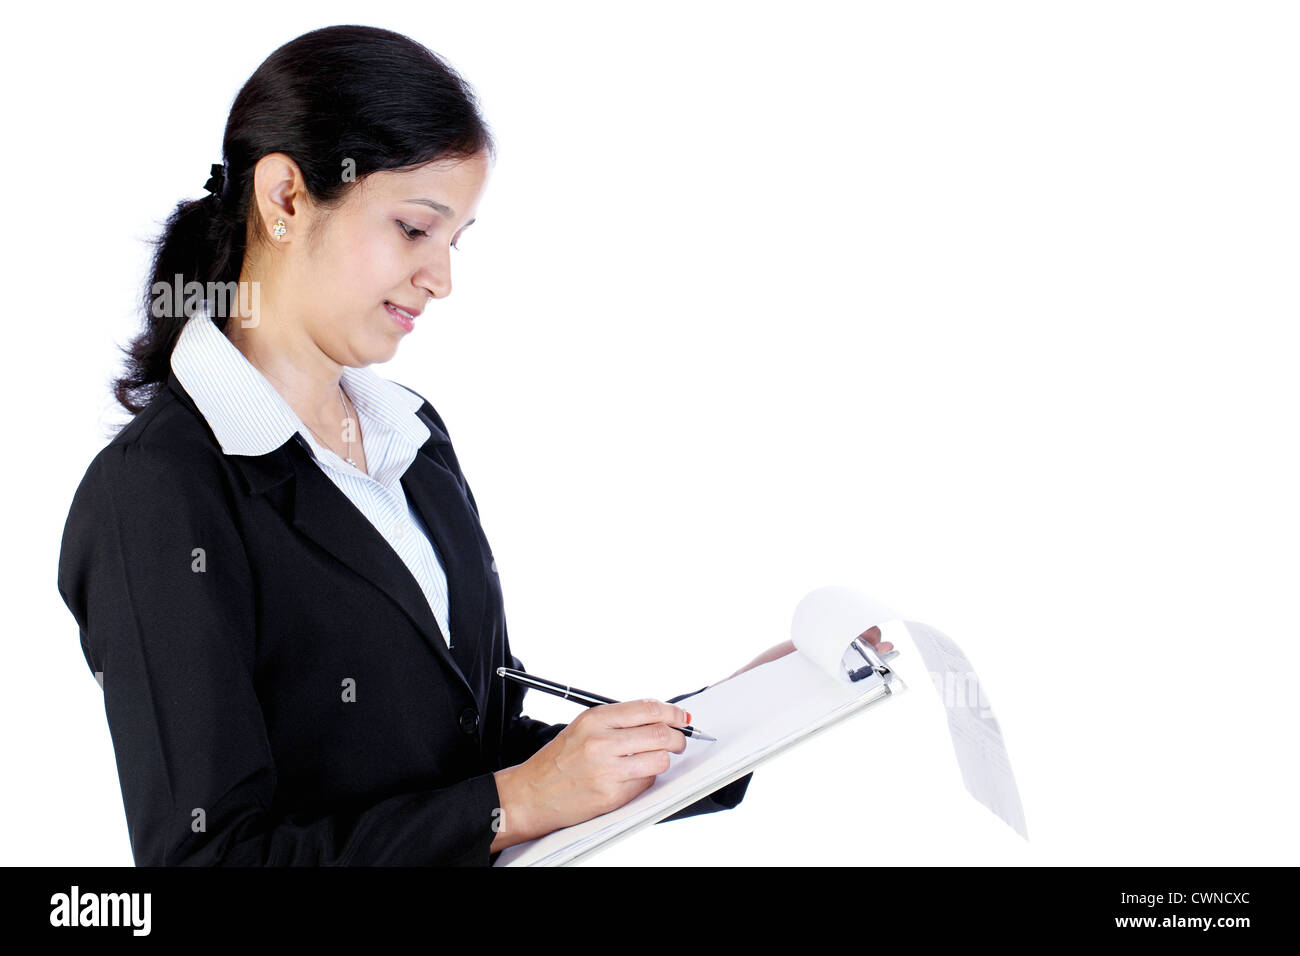 Beautiful business woman holding a clipboard and writing on white background - Stock Image